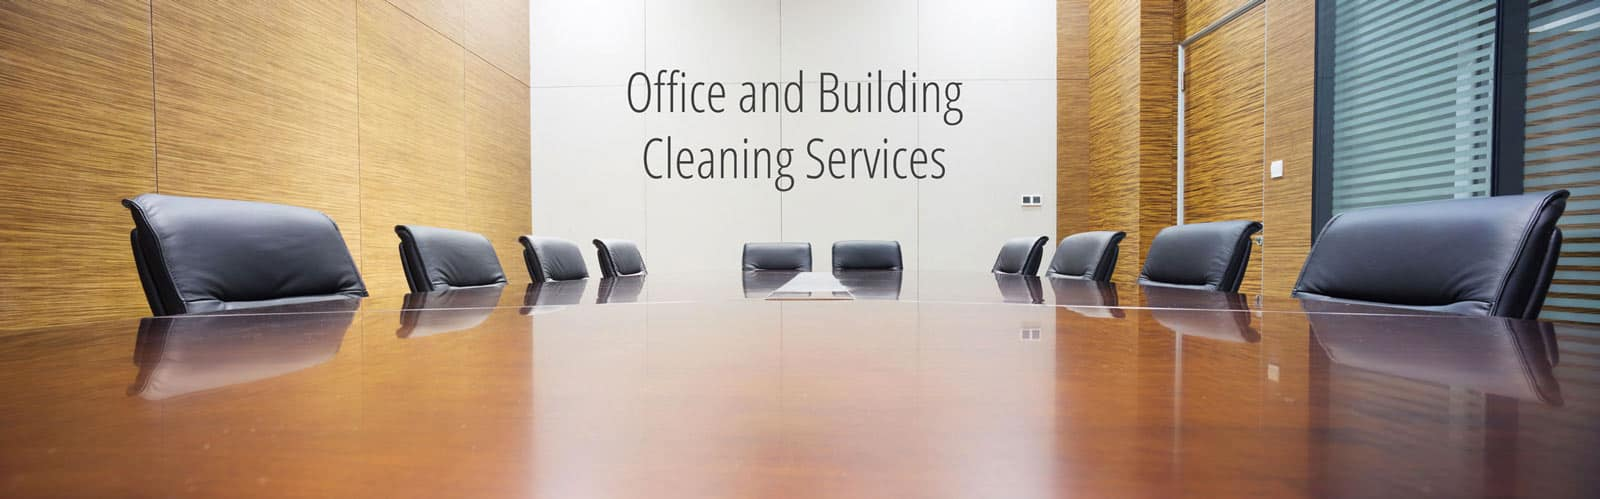 Office Cleaning Services Janitorial Services For Office Buildings